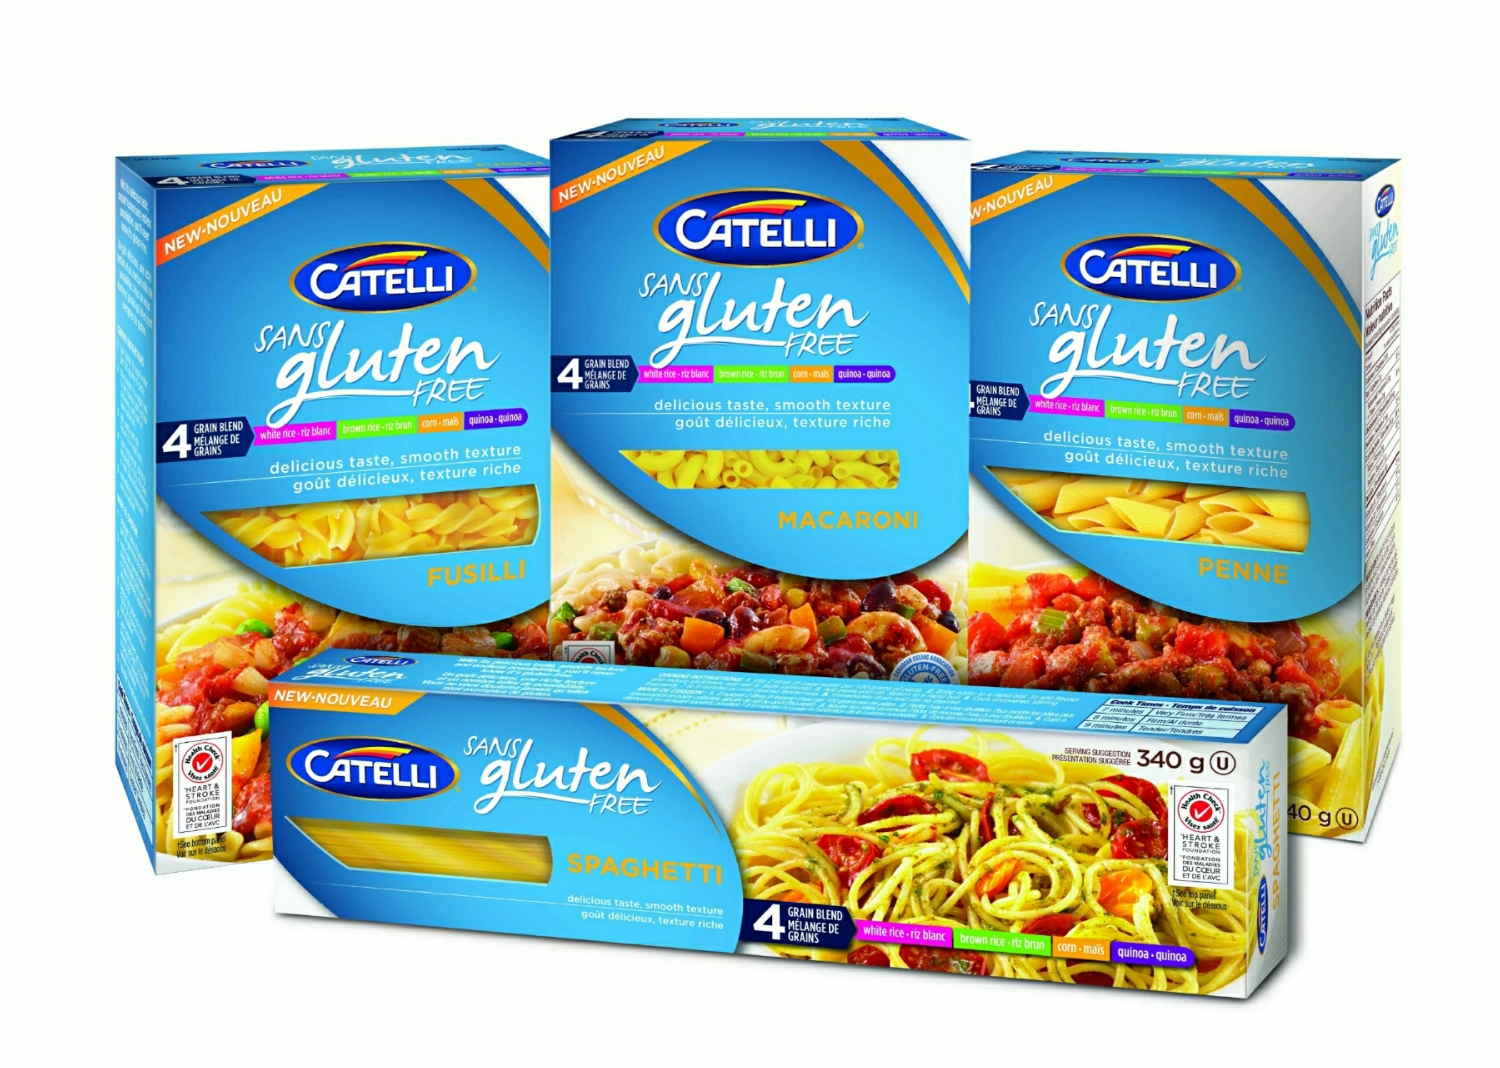 Catelli Gluten Free Pasta Product Shot